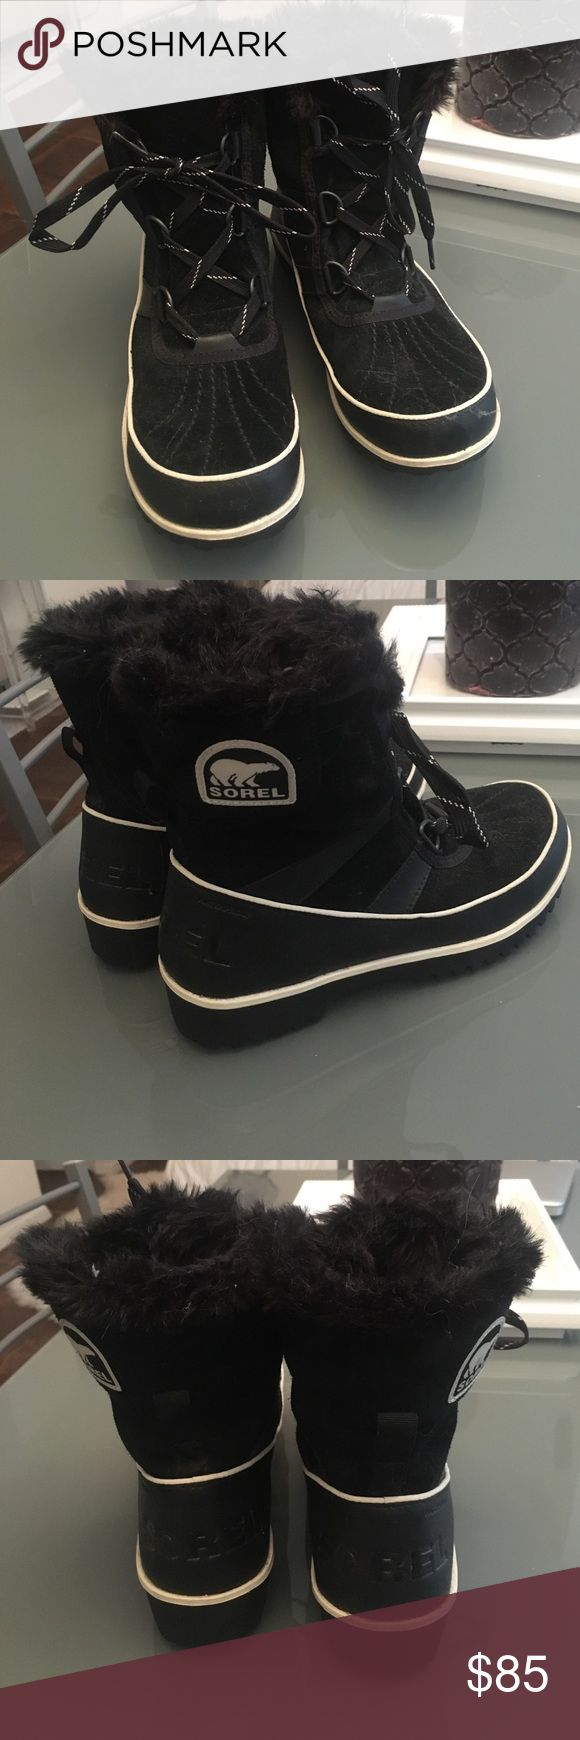 Black Sorel snow booties Fur lined lace up Sorel boots. So cute worn only a few times.  Size 7 NWOT SALE!!! NEED TO CLEAN OUT MY SHOE CLOSET Sorel Shoes Winter & Rain Boots